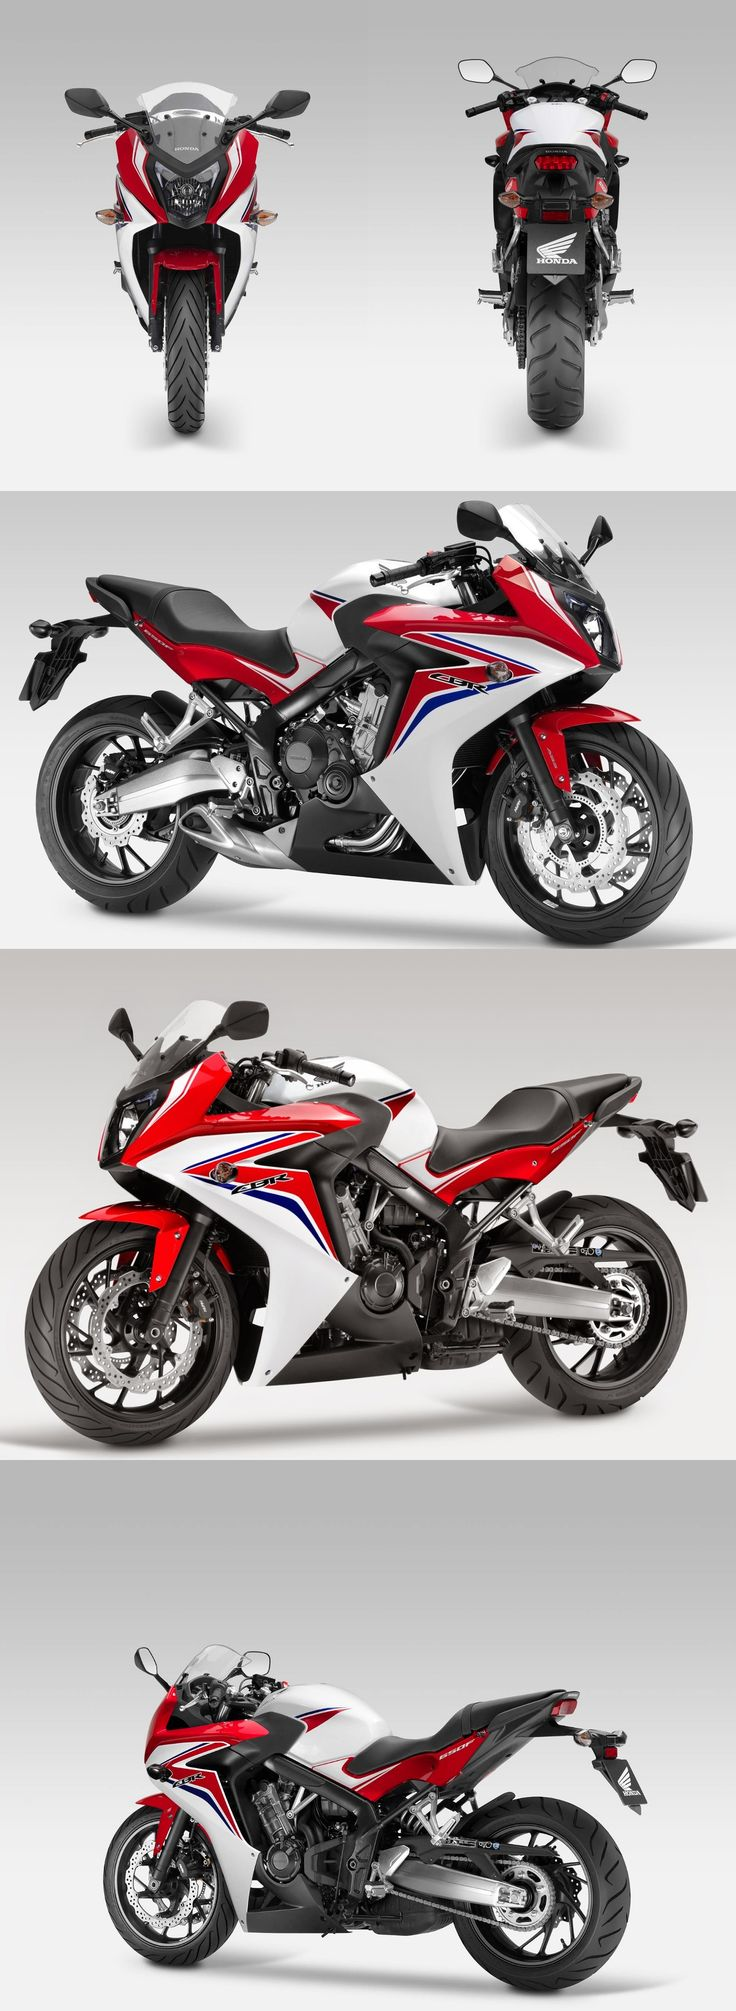 Honda cbr650f now available for inr 6 57 lakhs